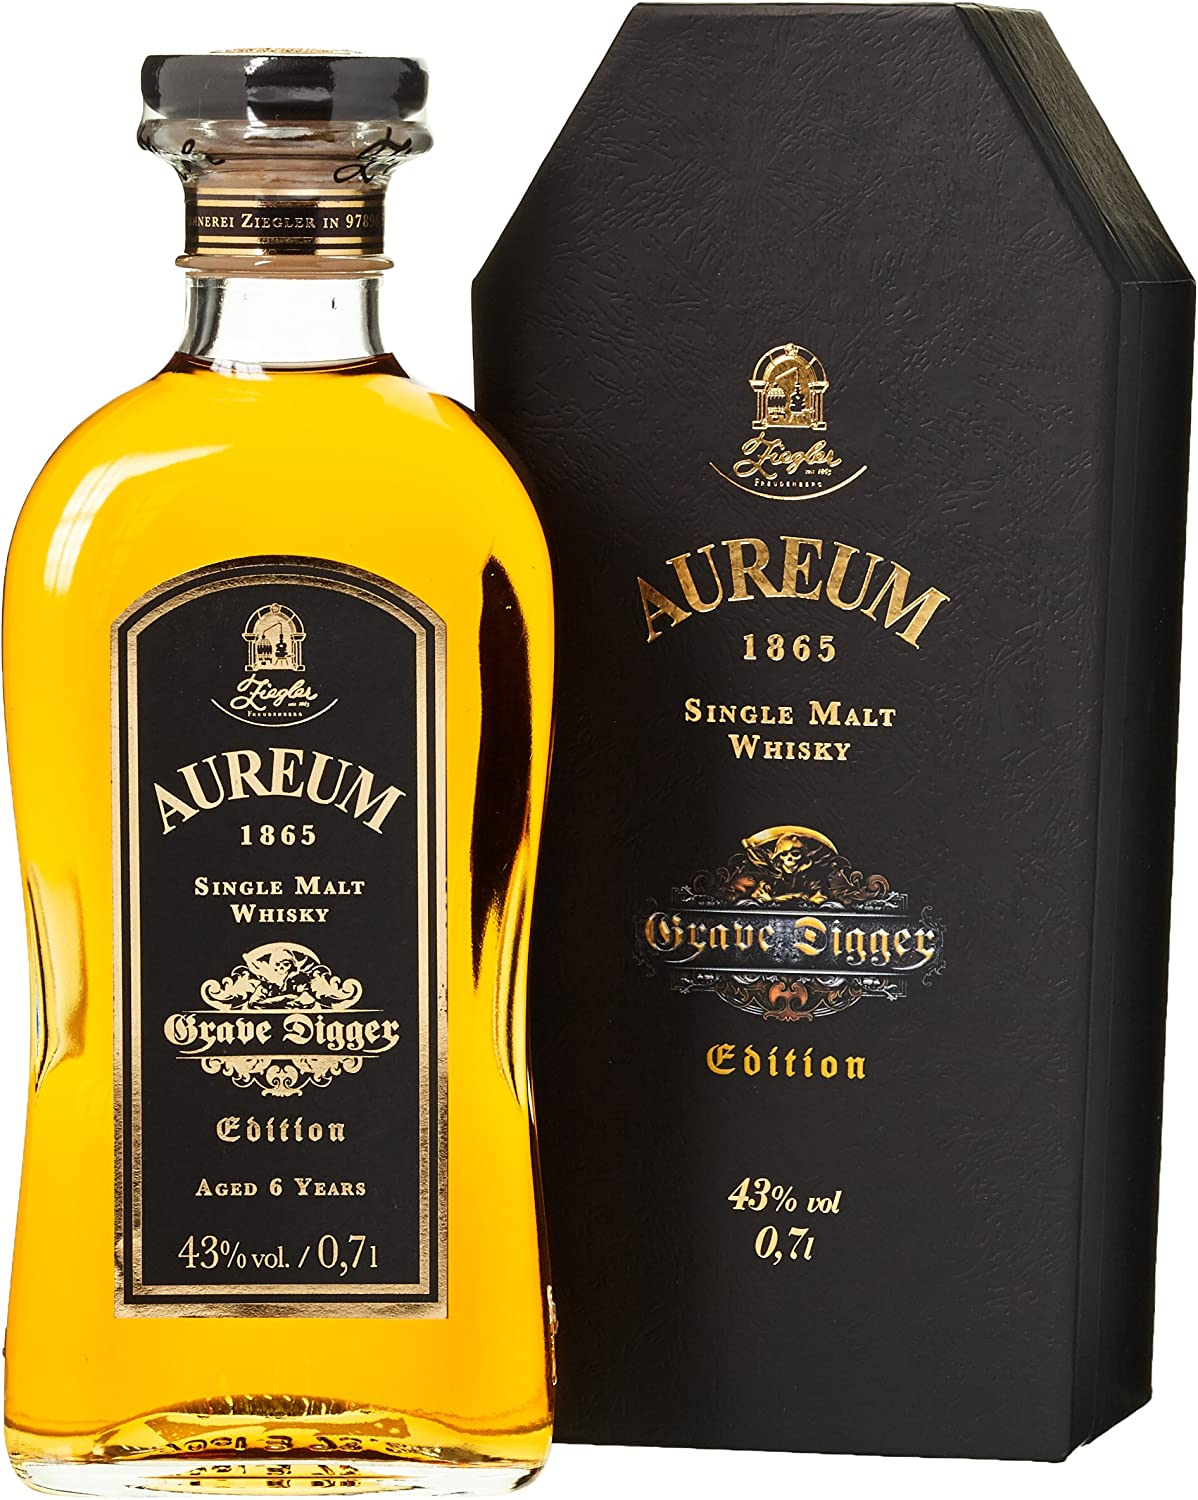 Aureum 1865 Grave Digger Single Malt Whisky